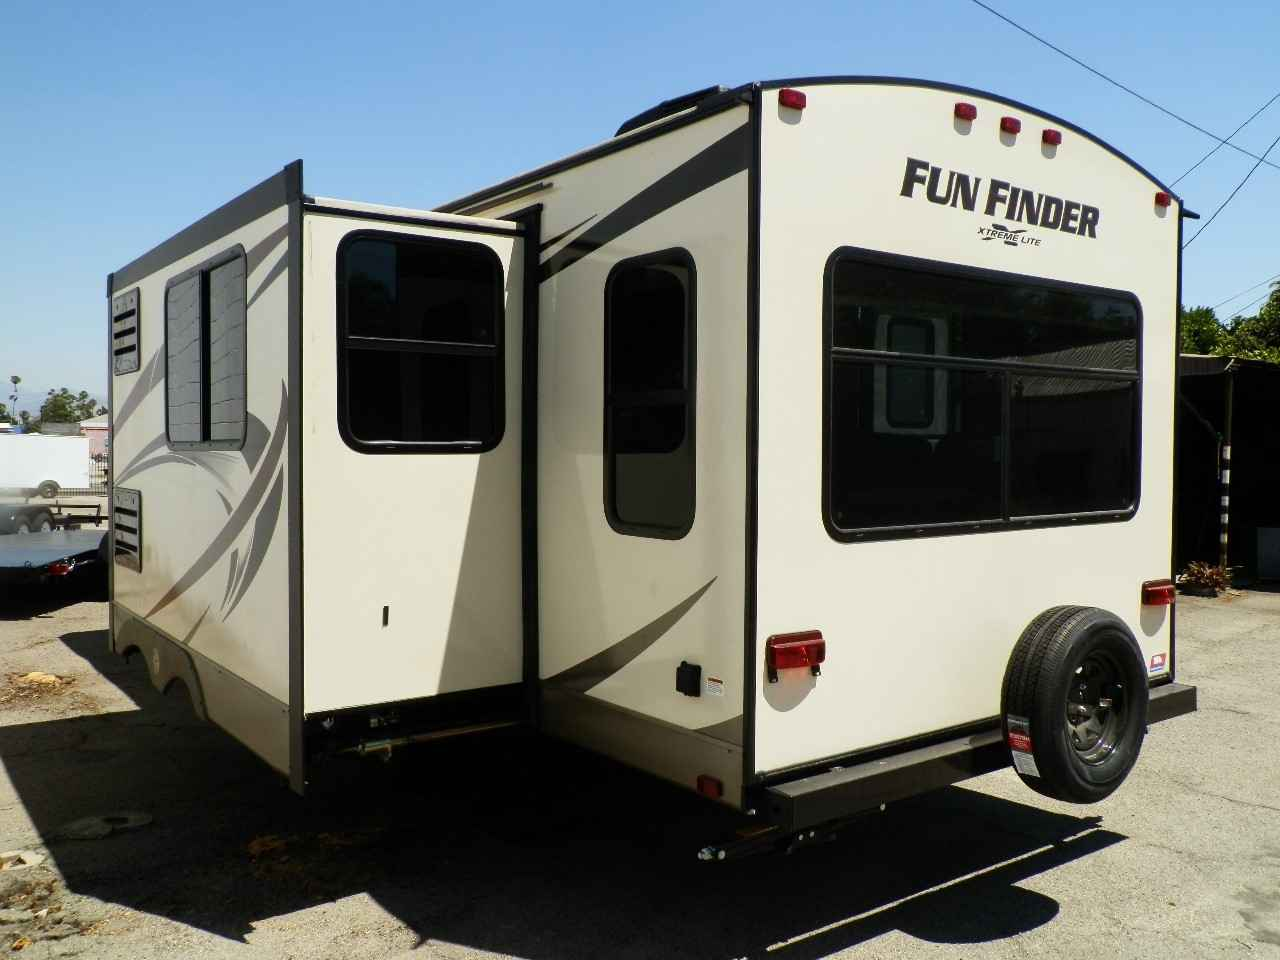 2018 New Cruiser Rv Corp Fun Finder 25rs Travel Trailer In